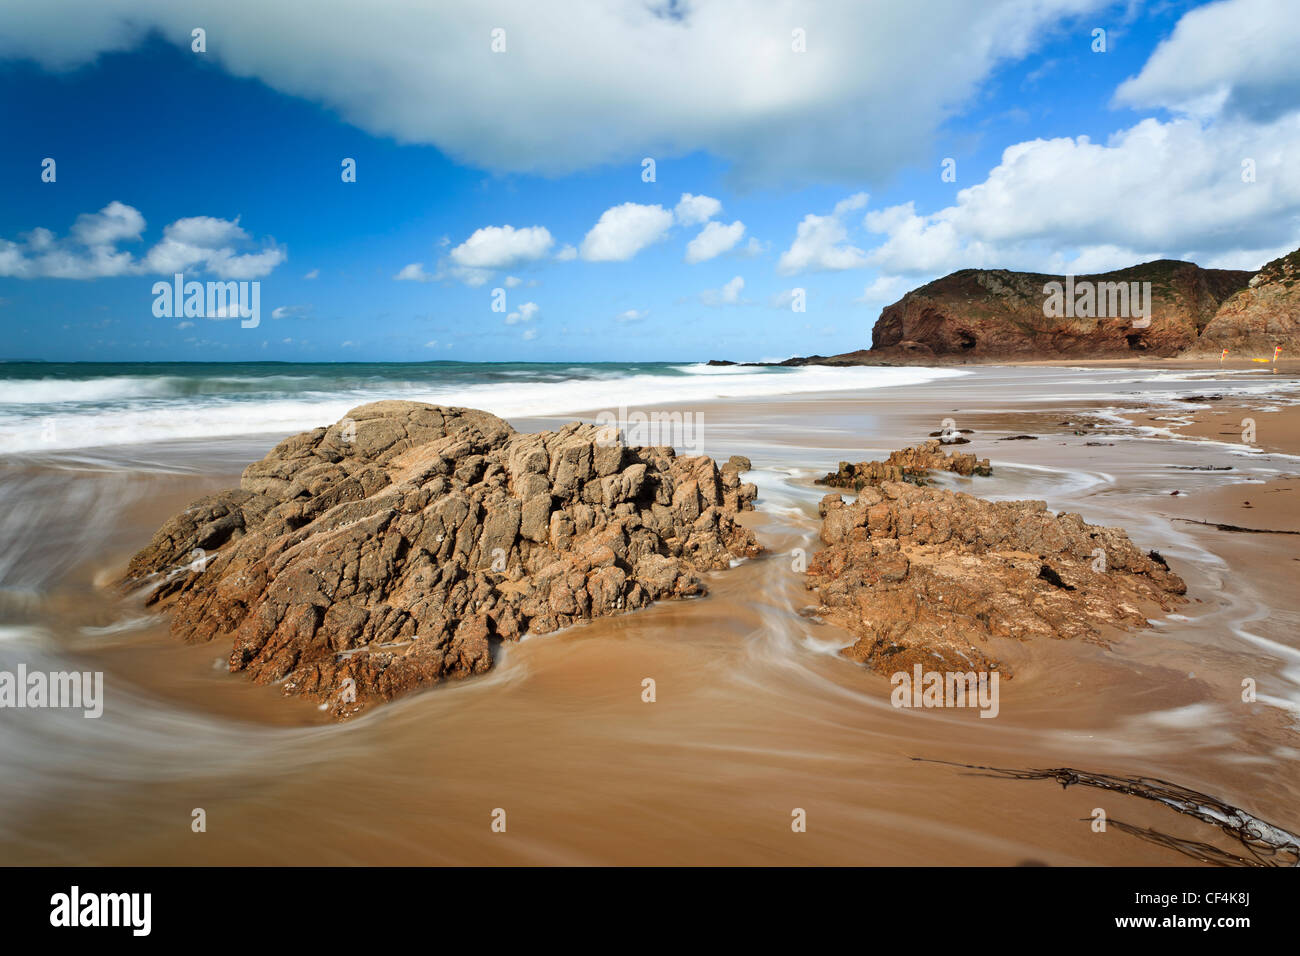 Swirling tide around rocks on the sandy beach at Plemont Bay in Jersey. - Stock Image